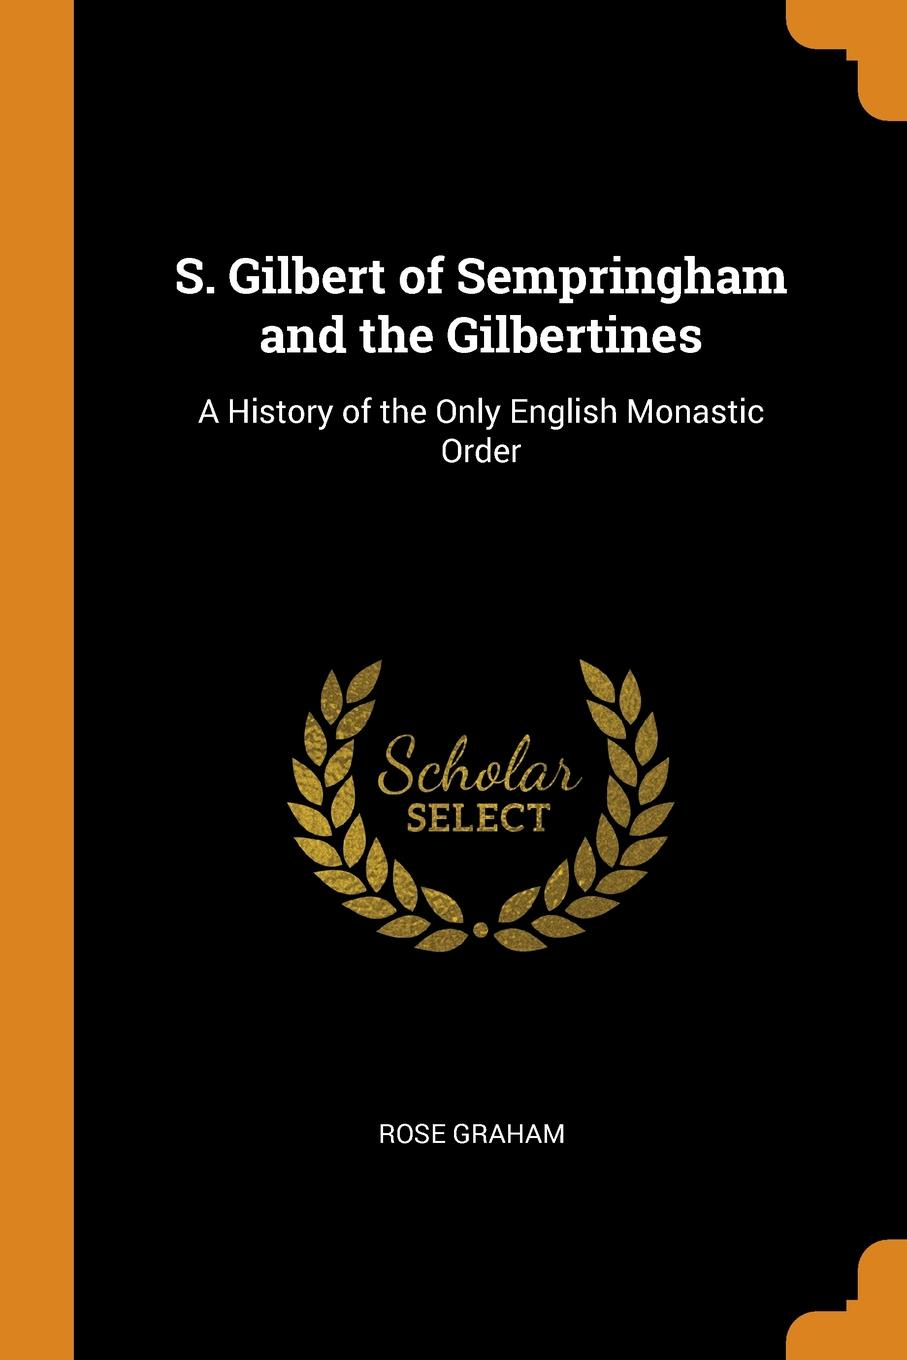 S. Gilbert of Sempringham and the Gilbertines. A History of the Only English Monastic Order